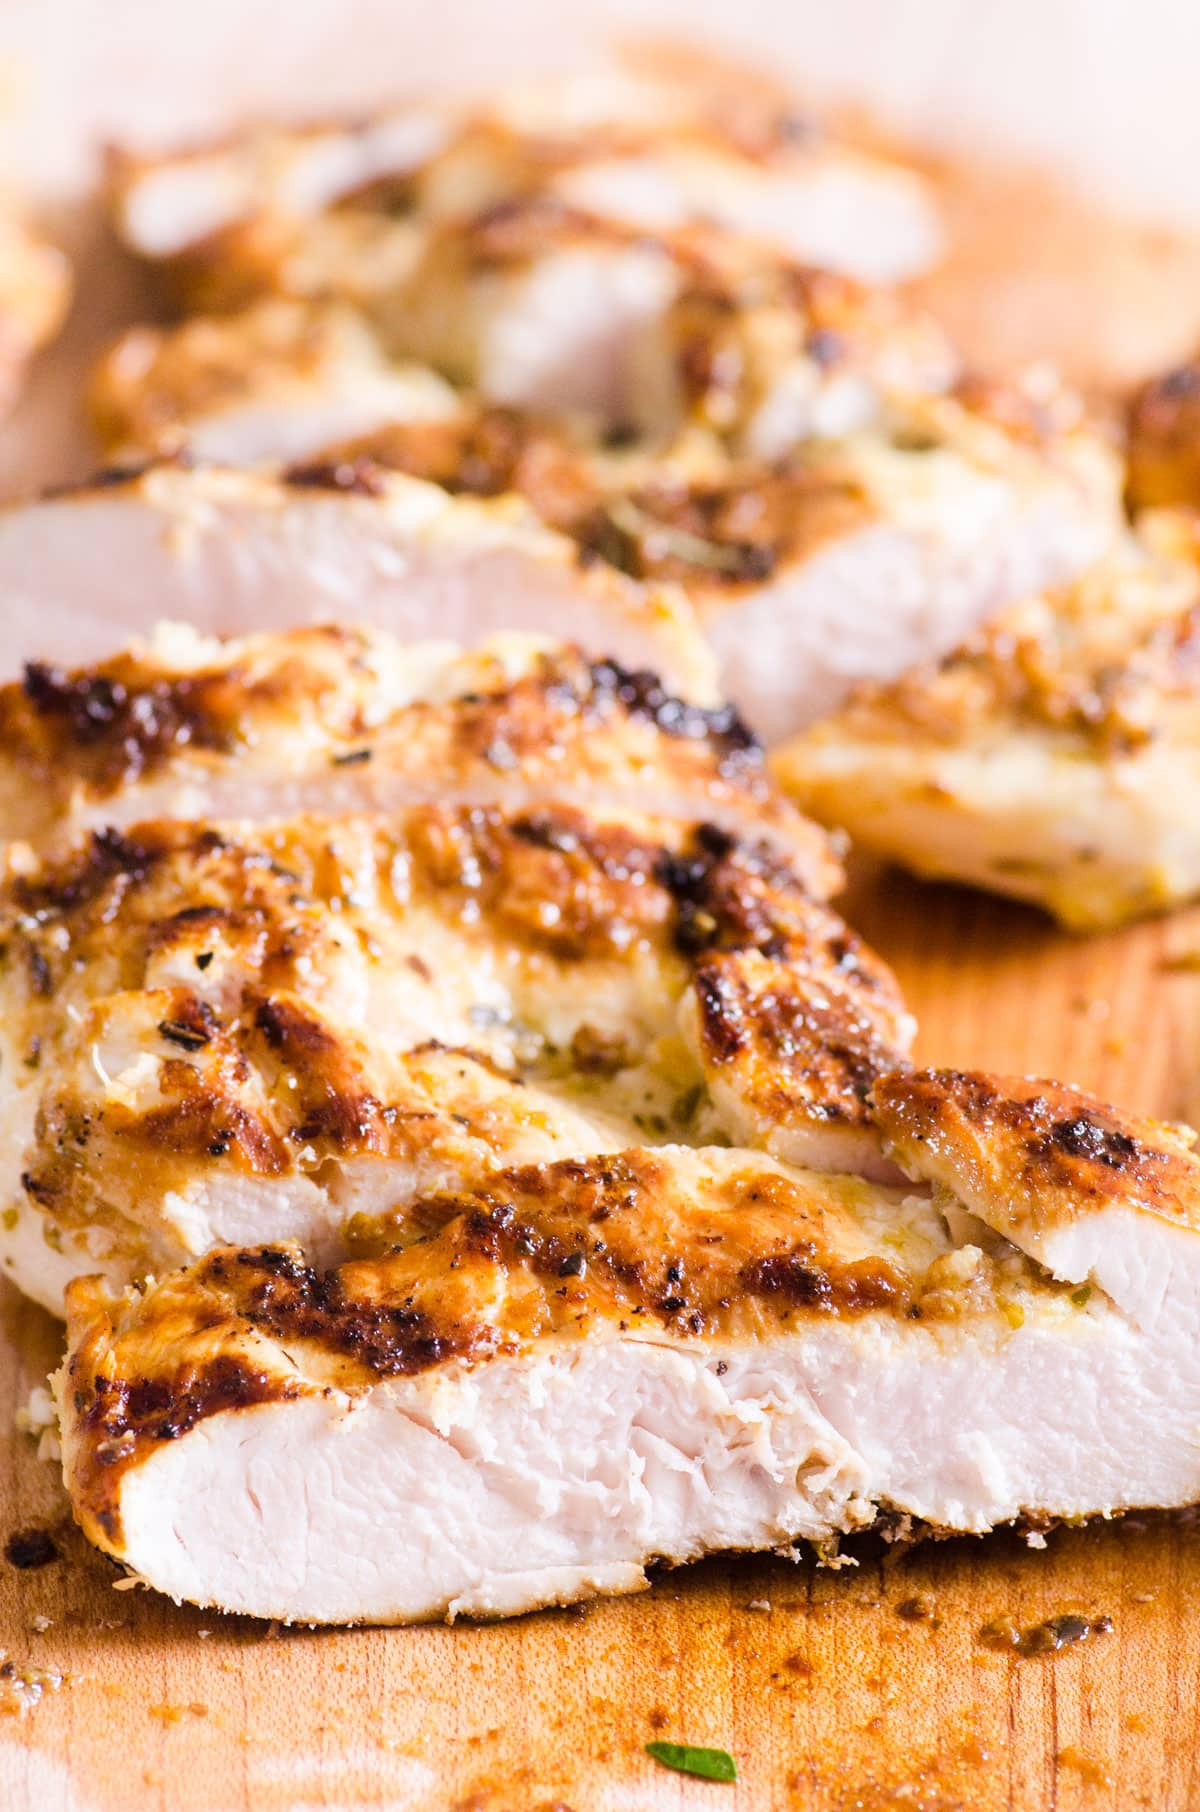 Grilled Chicken Breast sliced on a cutting board